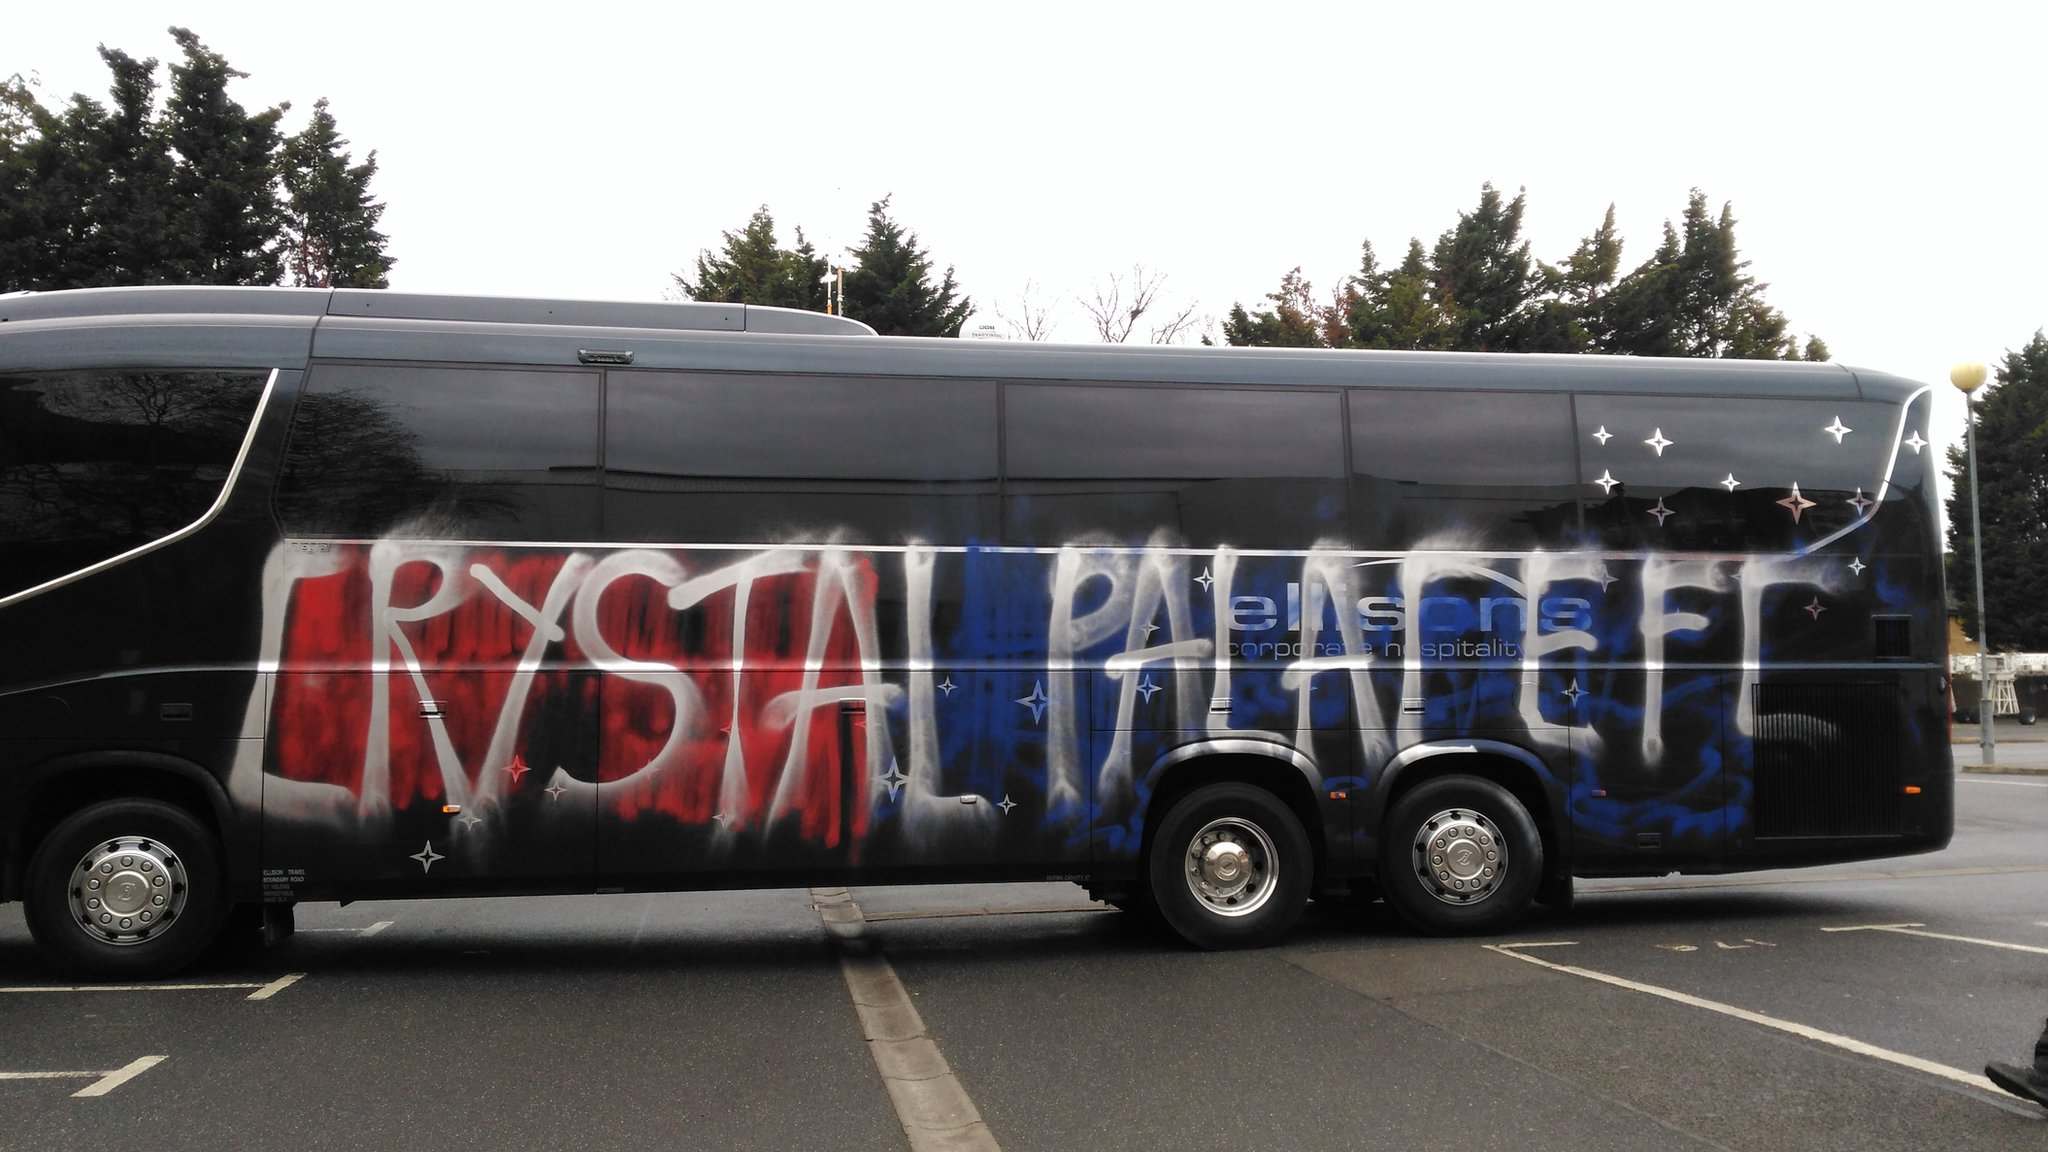 Palace team coach vandalised before home match